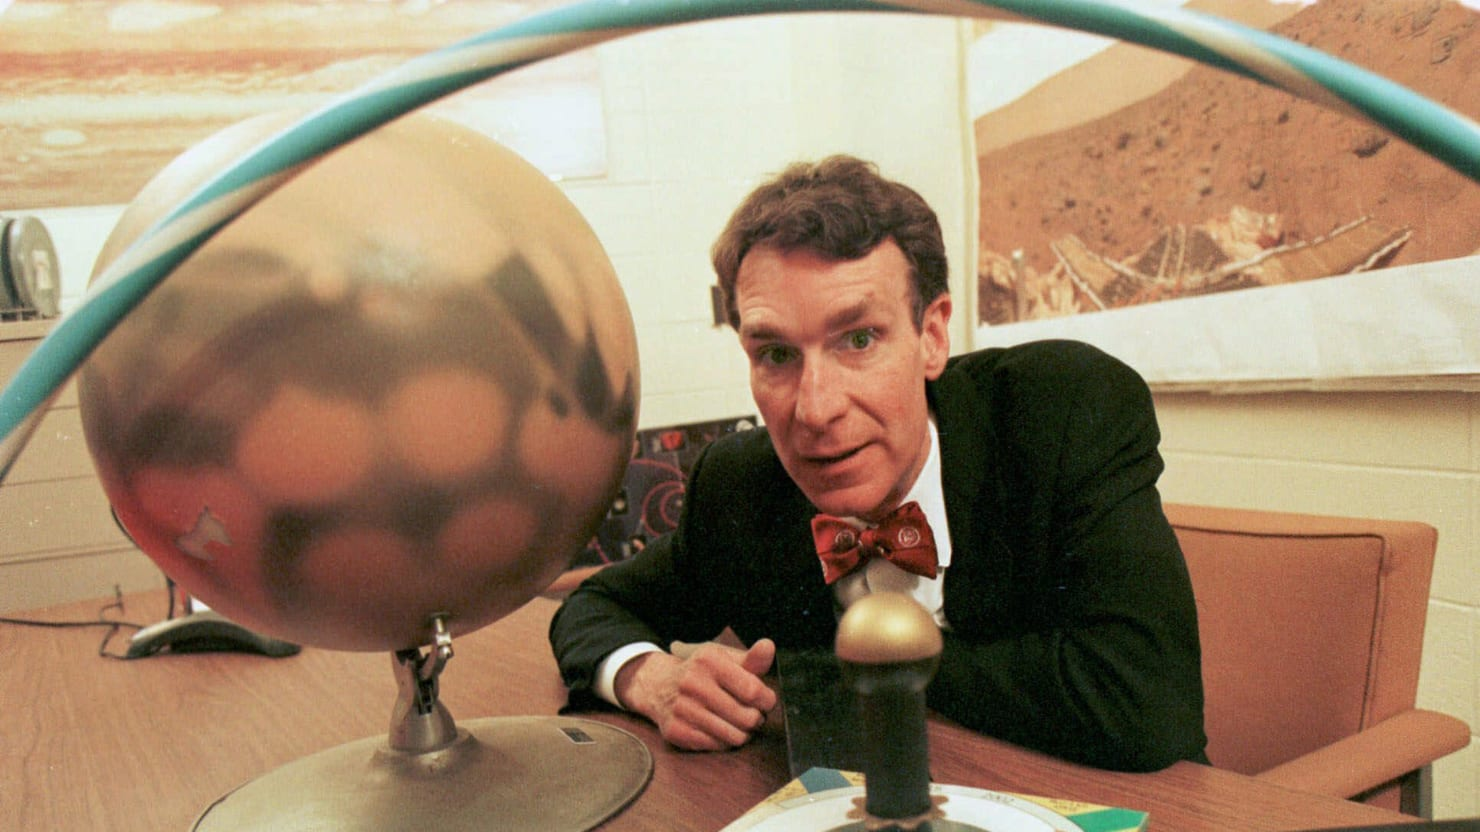 Fringe Factor: Bill Nye The Science Guy Does Not Understand Science